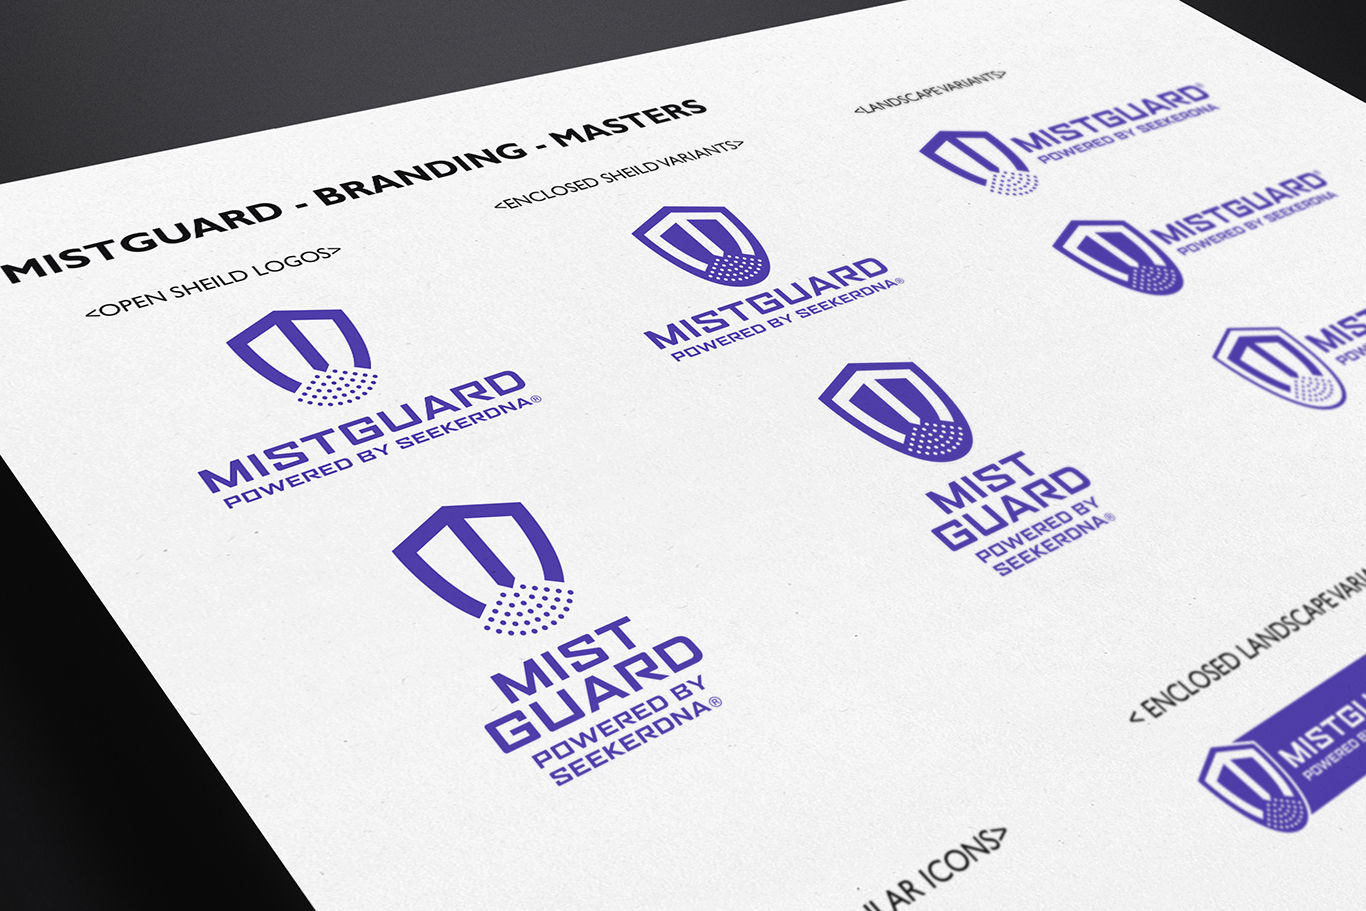 MISTGUARD BRANDING & MARKETING SUITE